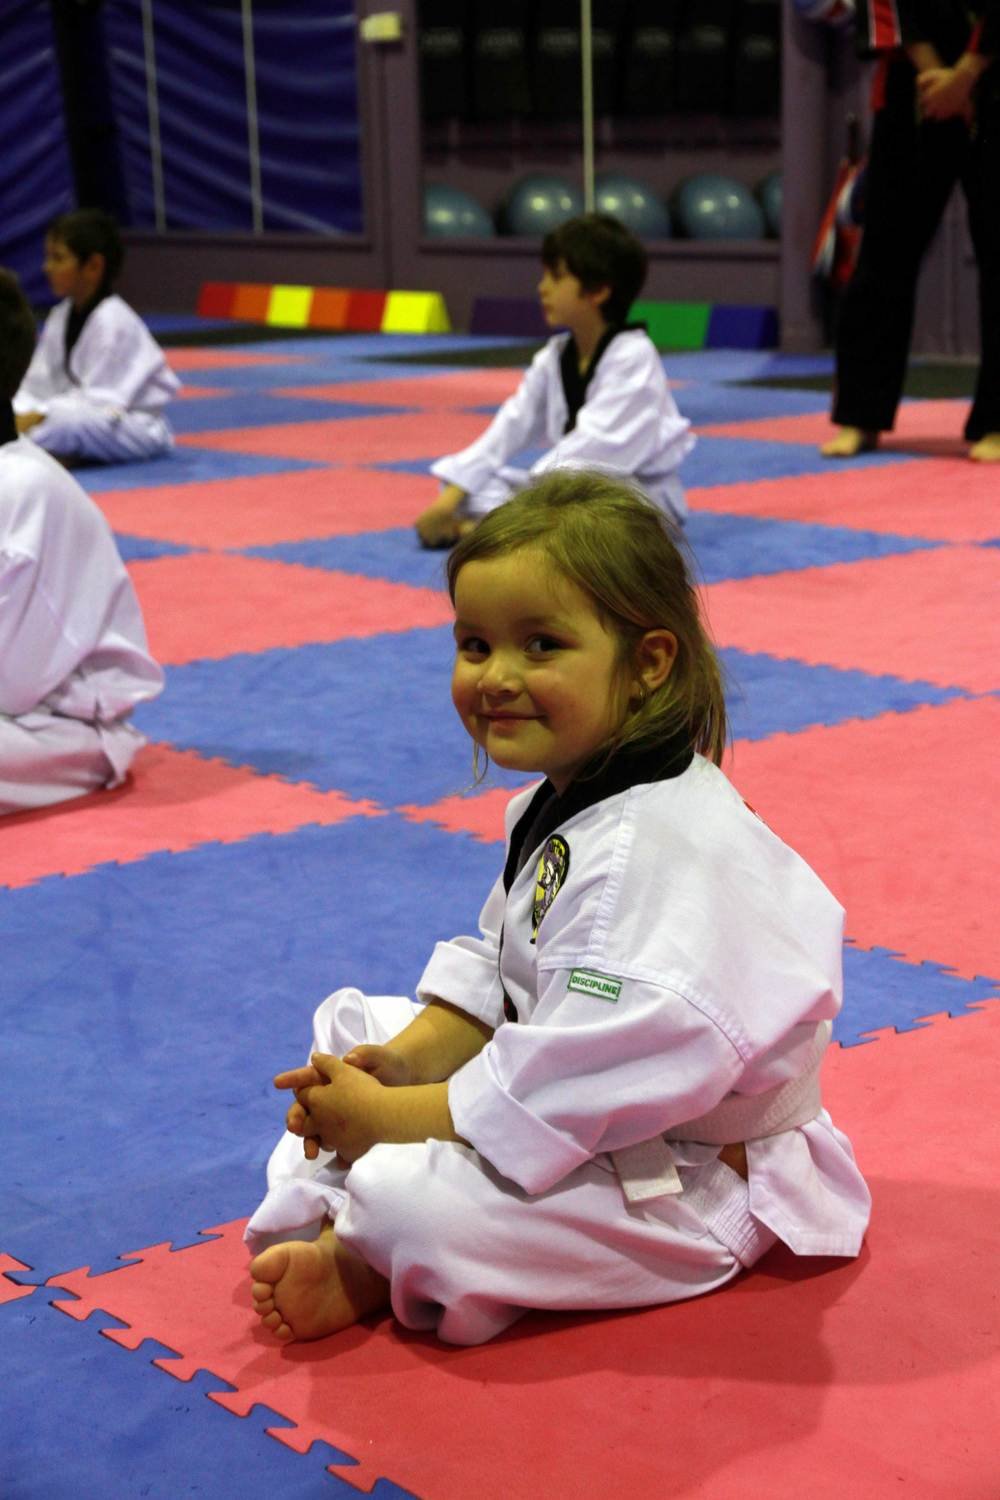 Learn Martial Arts in a fun and safe environment